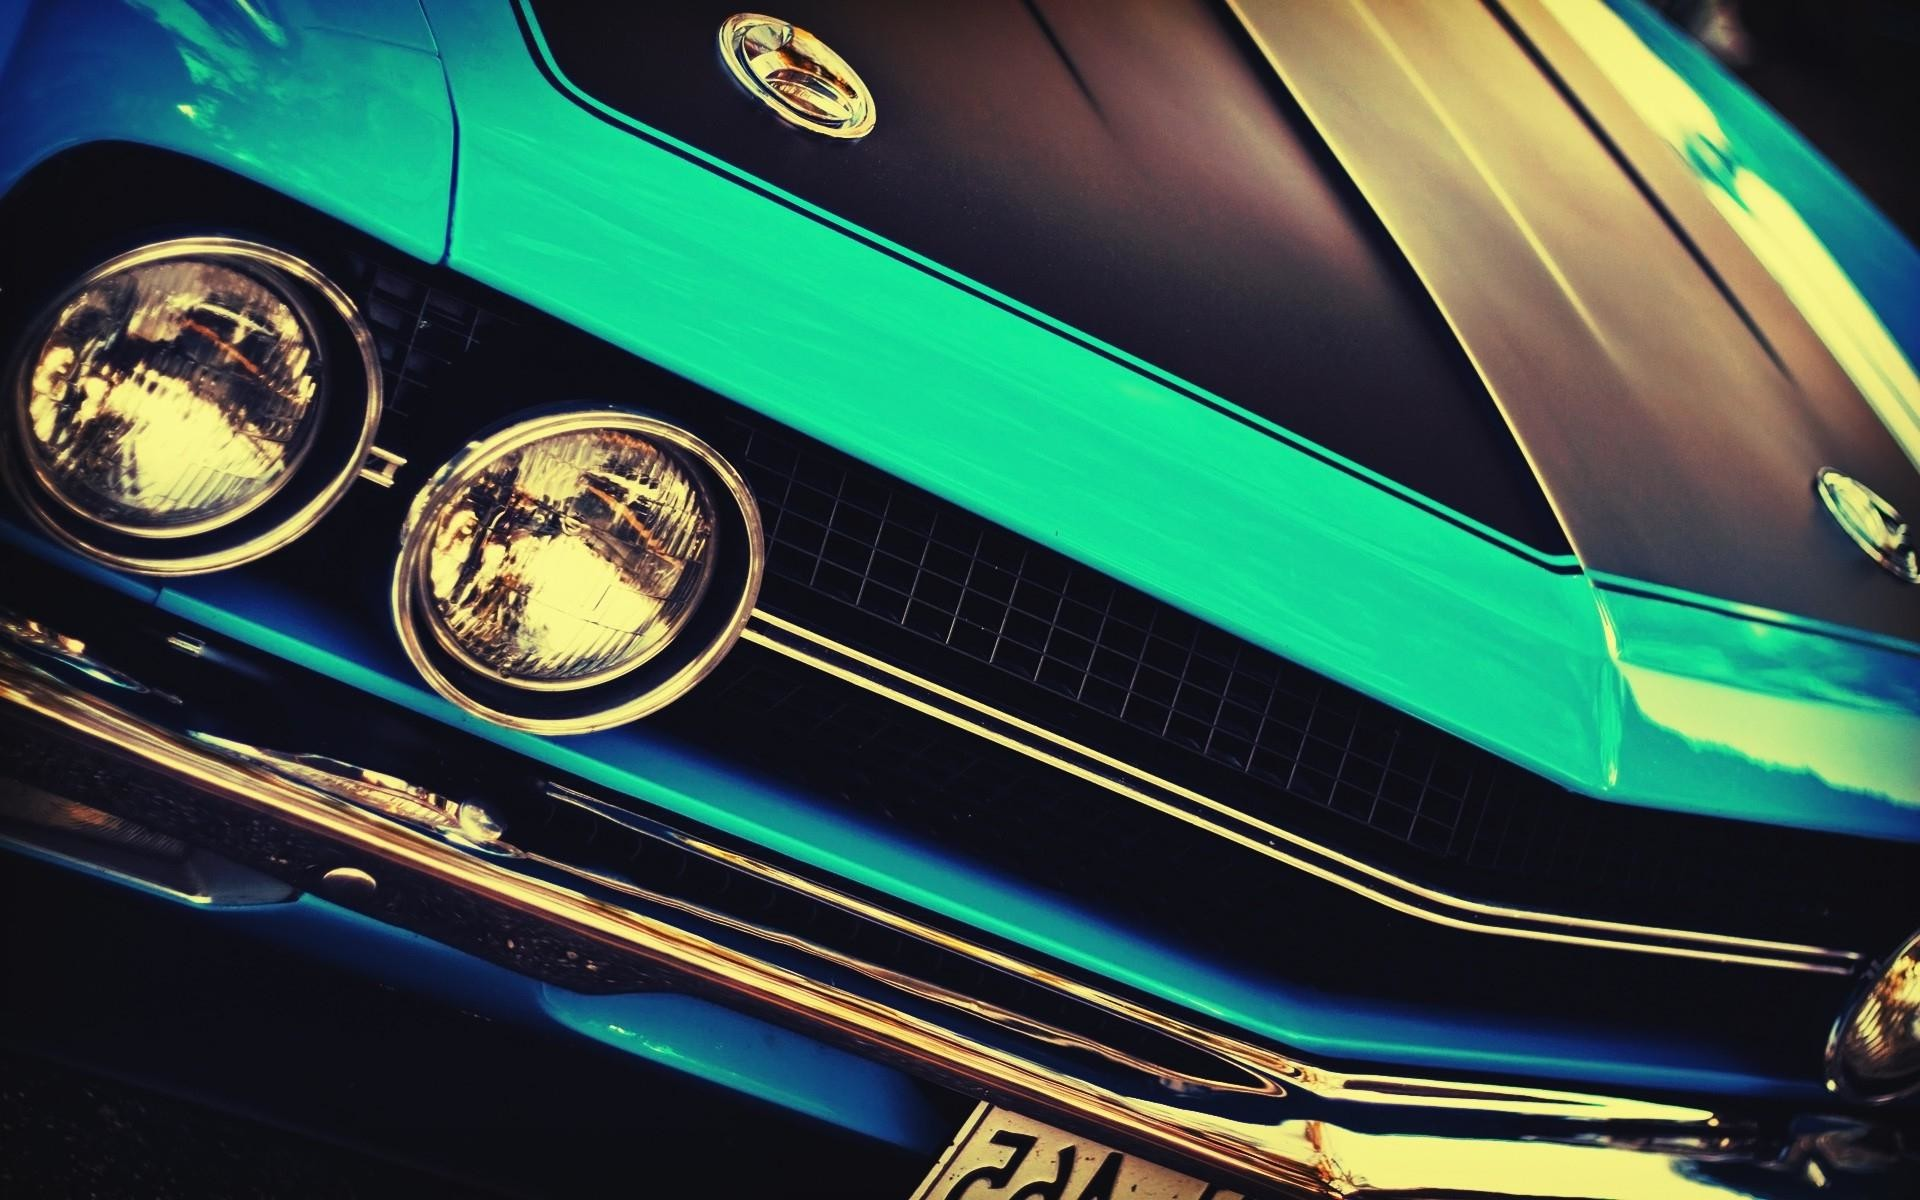 HD Wallpapers Classic Cars 72 Images